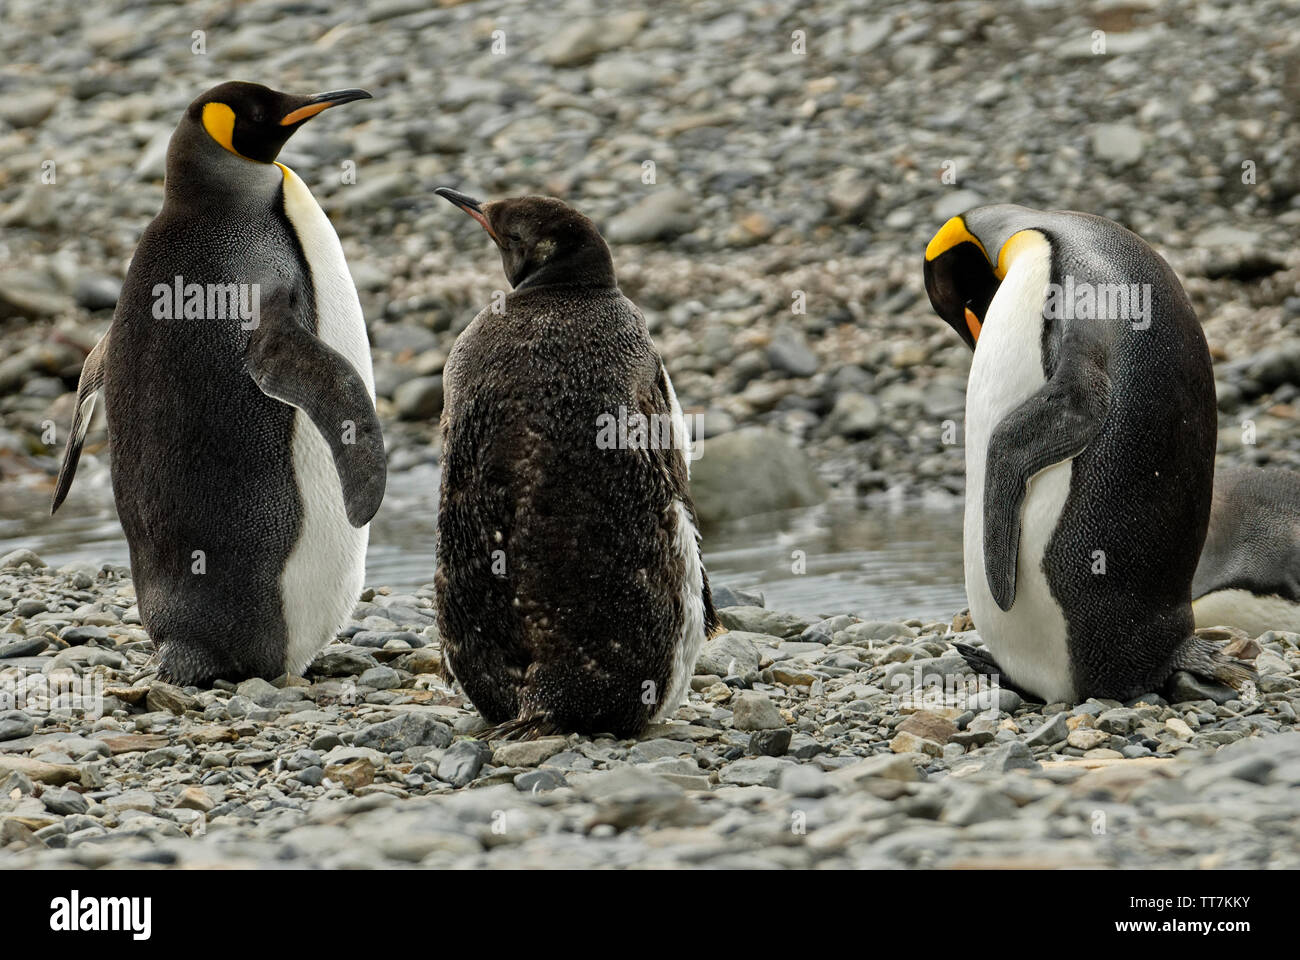 Family group of king penguins on a beach on South Georgia, Antartica - Stock Image